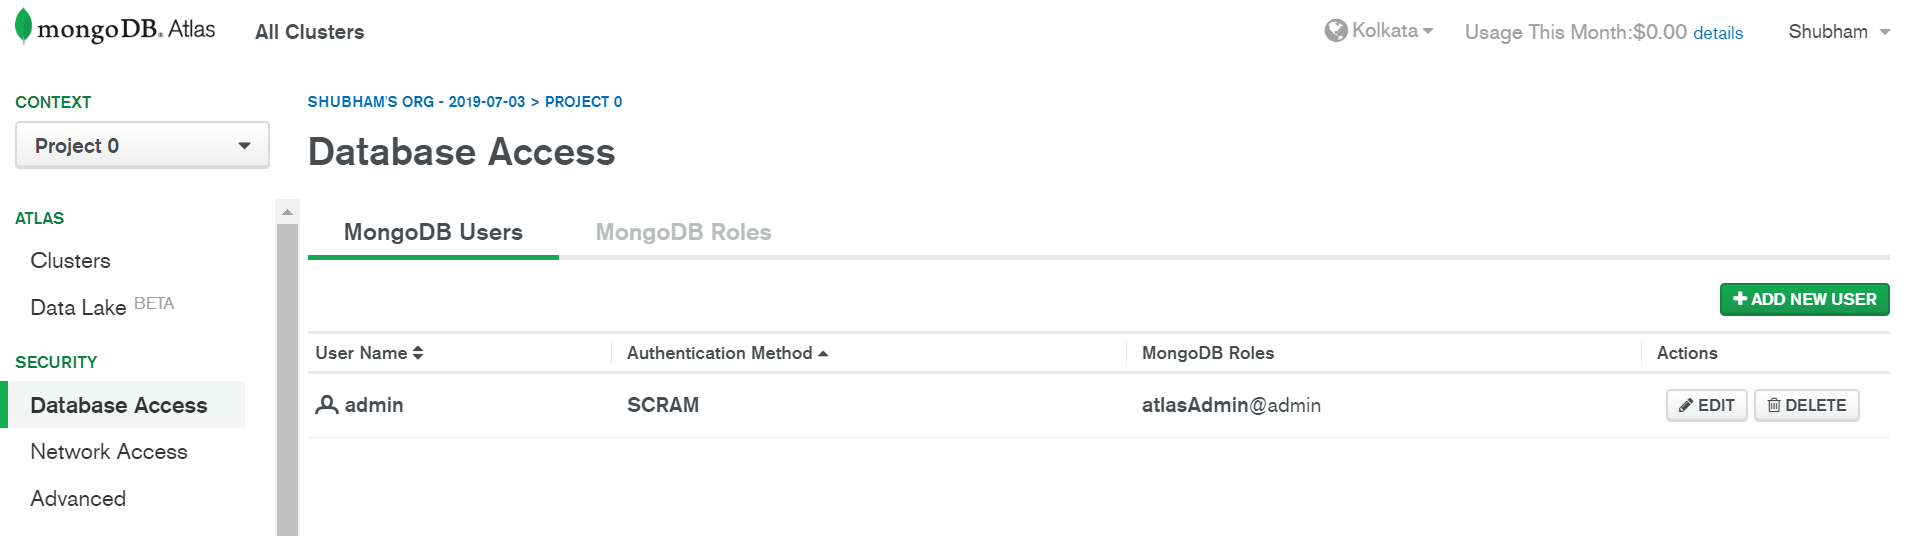 Build a Todo App in Golang, MongoDB, and React - Level Up Coding